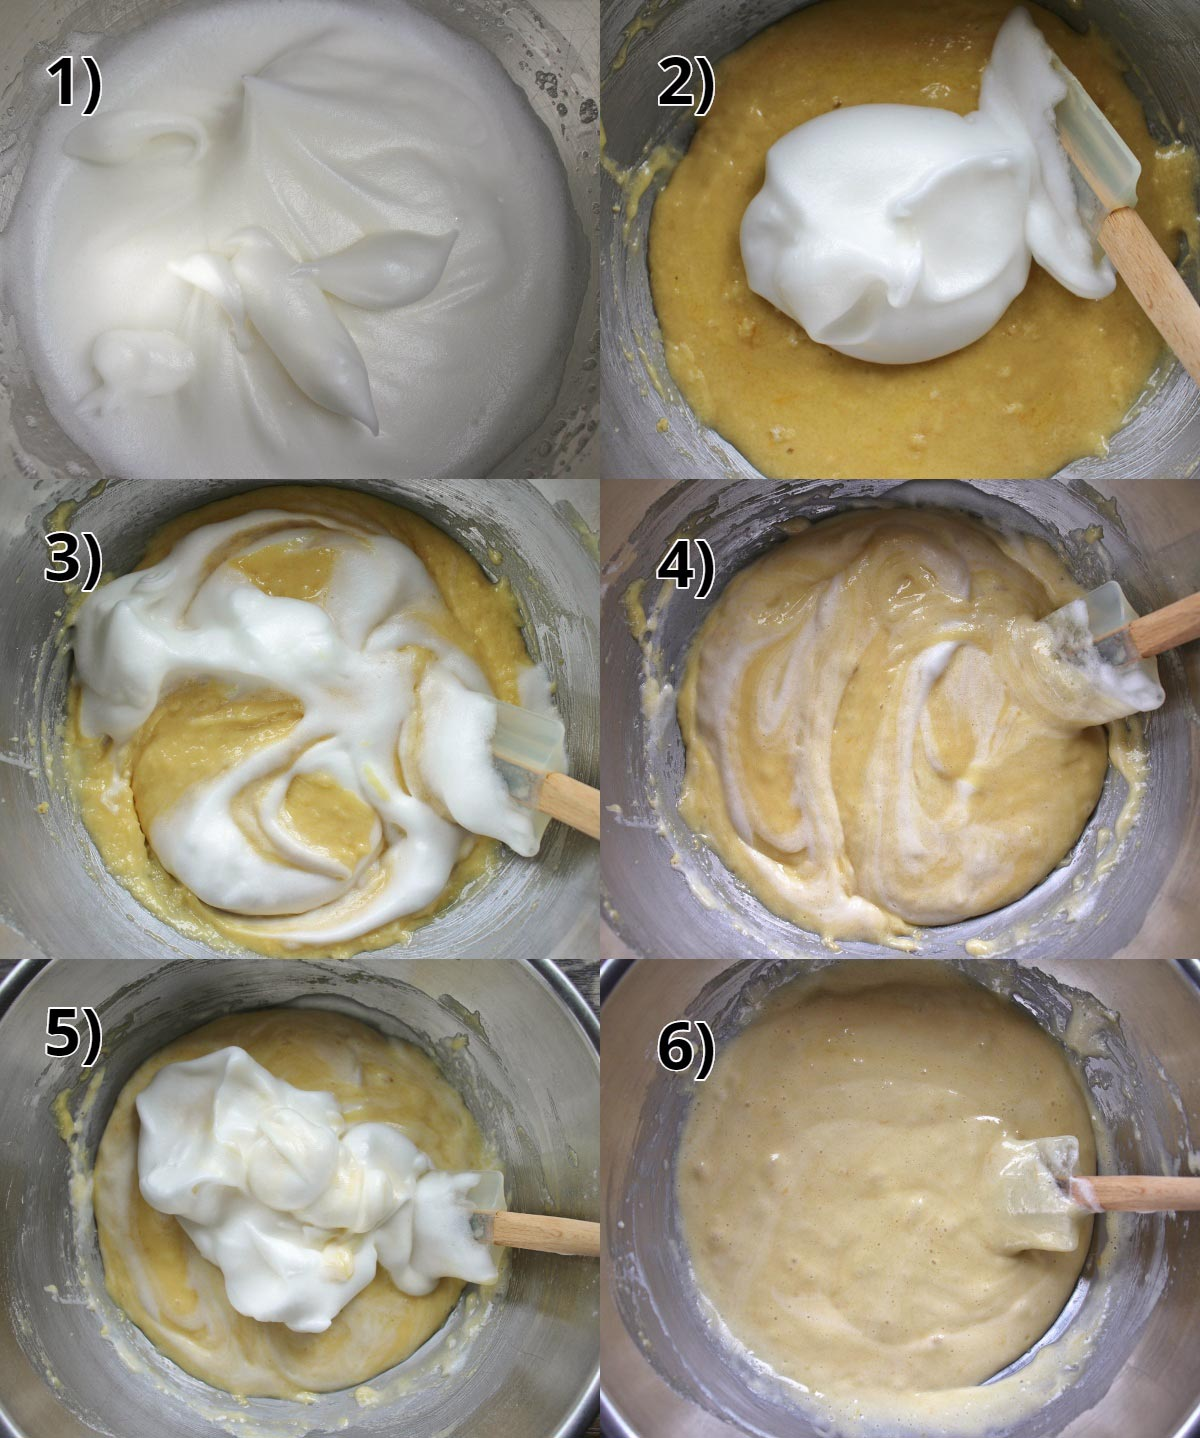 step by step photos of how to fold beaten egg whites into cake batter little by little